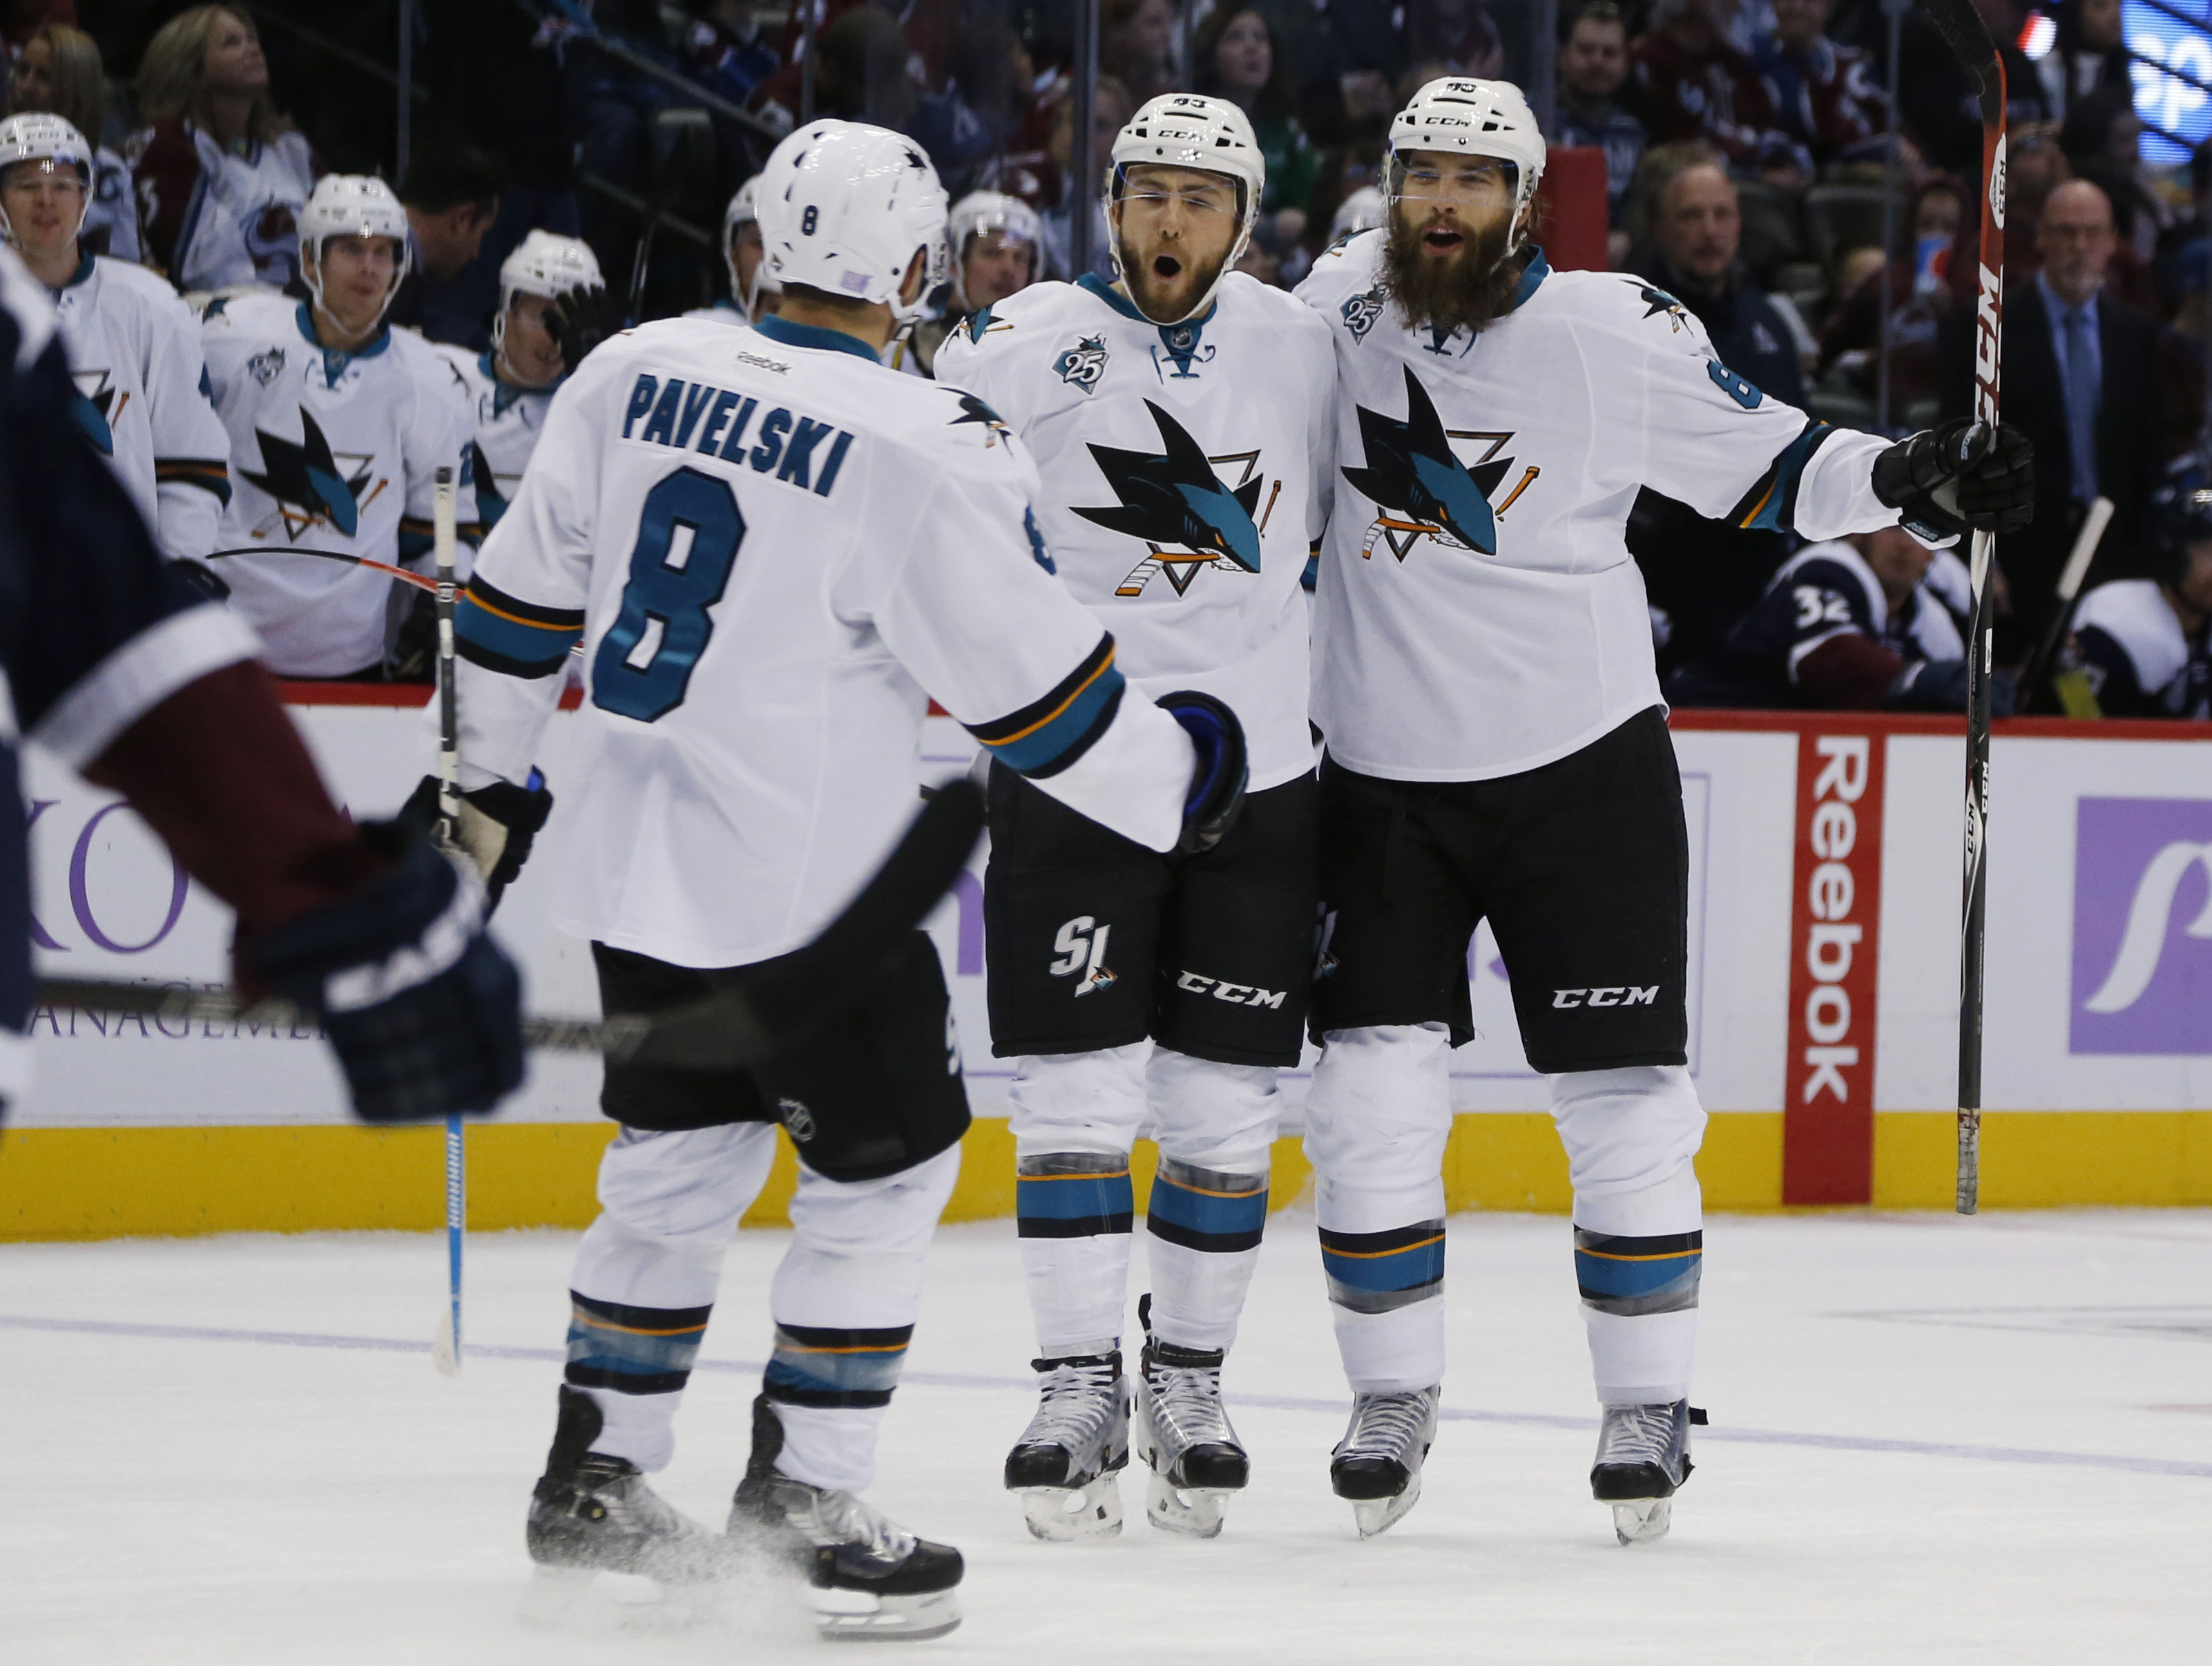 San Jose Sharks defenseman Brent Burns, right, celebrates scoring a short-handed goal against the Colorado Avalanche with teammates Marc-Edouard Vlasic, center, and Joe Pavelski in the second period of an NHL hockey game Sunday, Nov. 1, 2015, in Denver. (